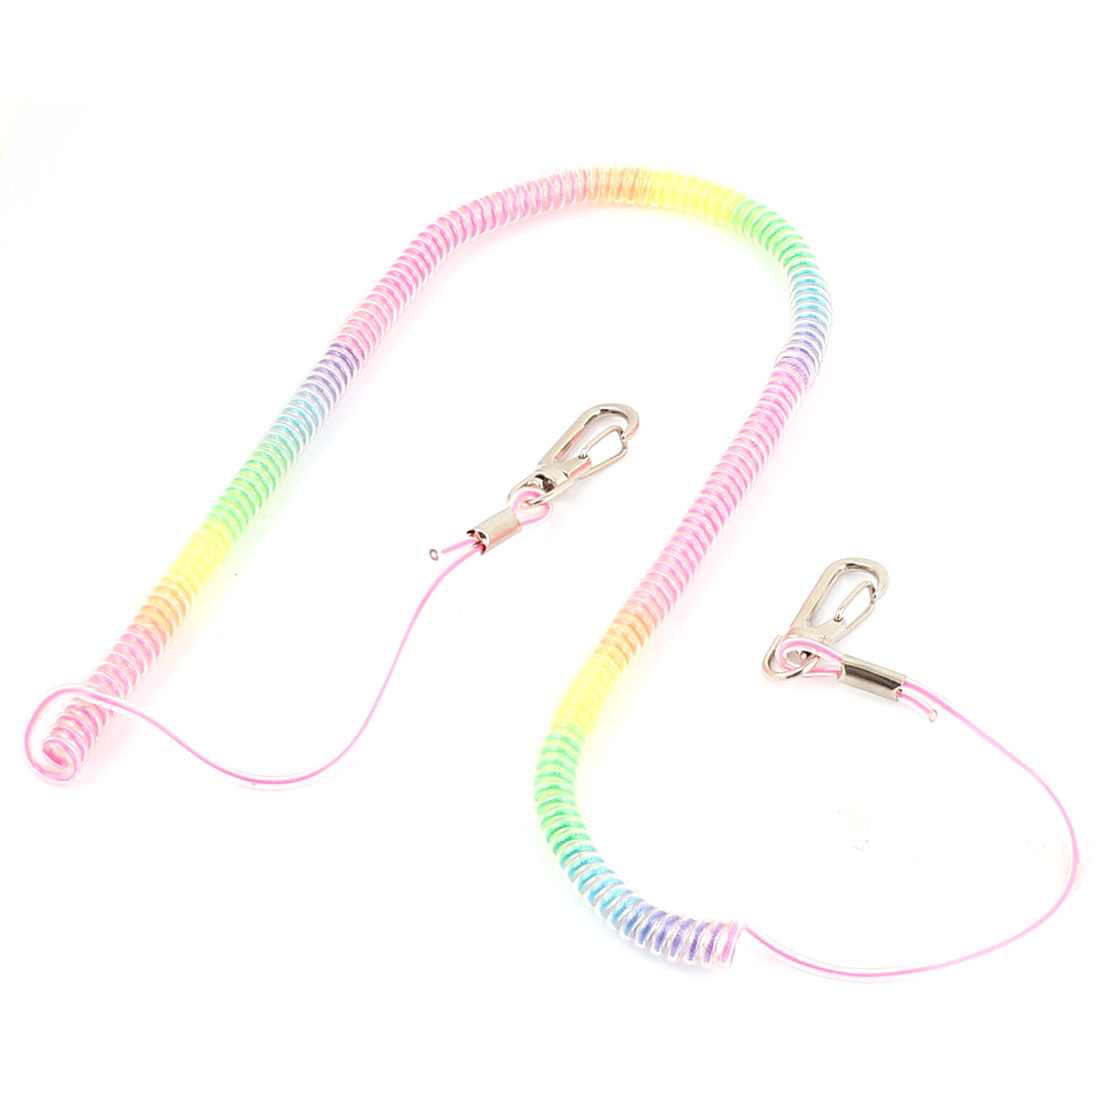 4 Meter Strecthed Coiled Flexible Fishing Lanyard Safety Protector Elastic Rope Cord